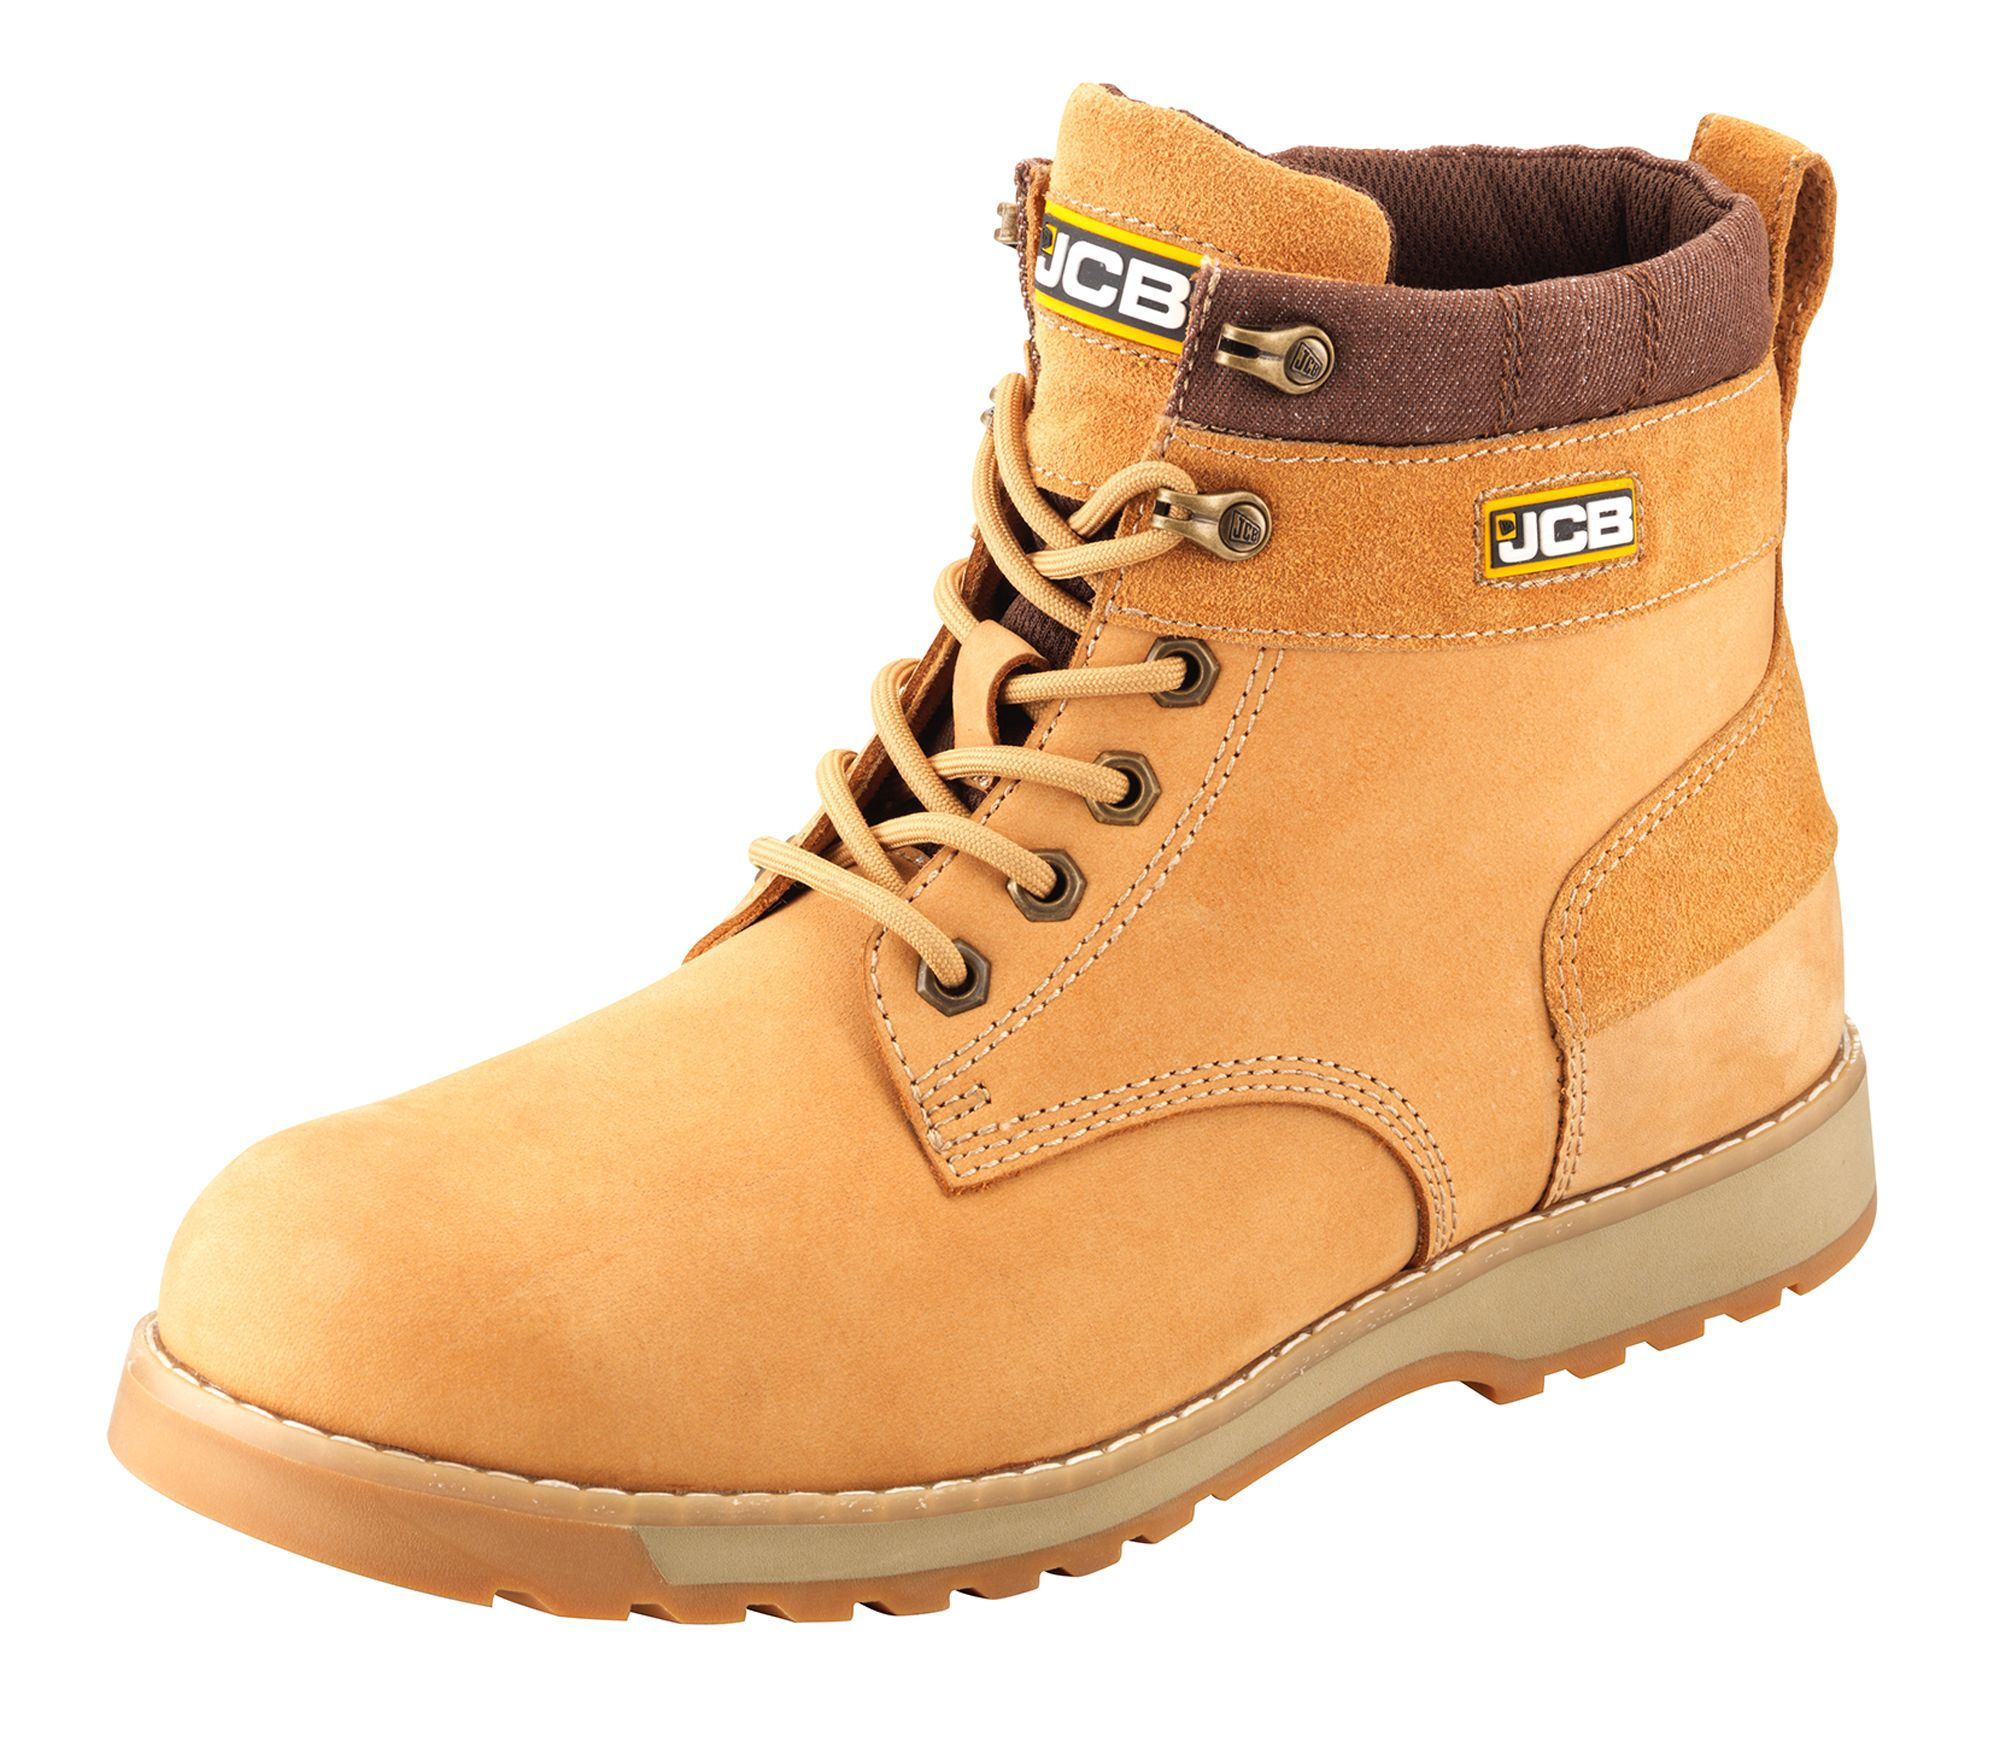 Jcb Honey 5cx Boots, Size 7